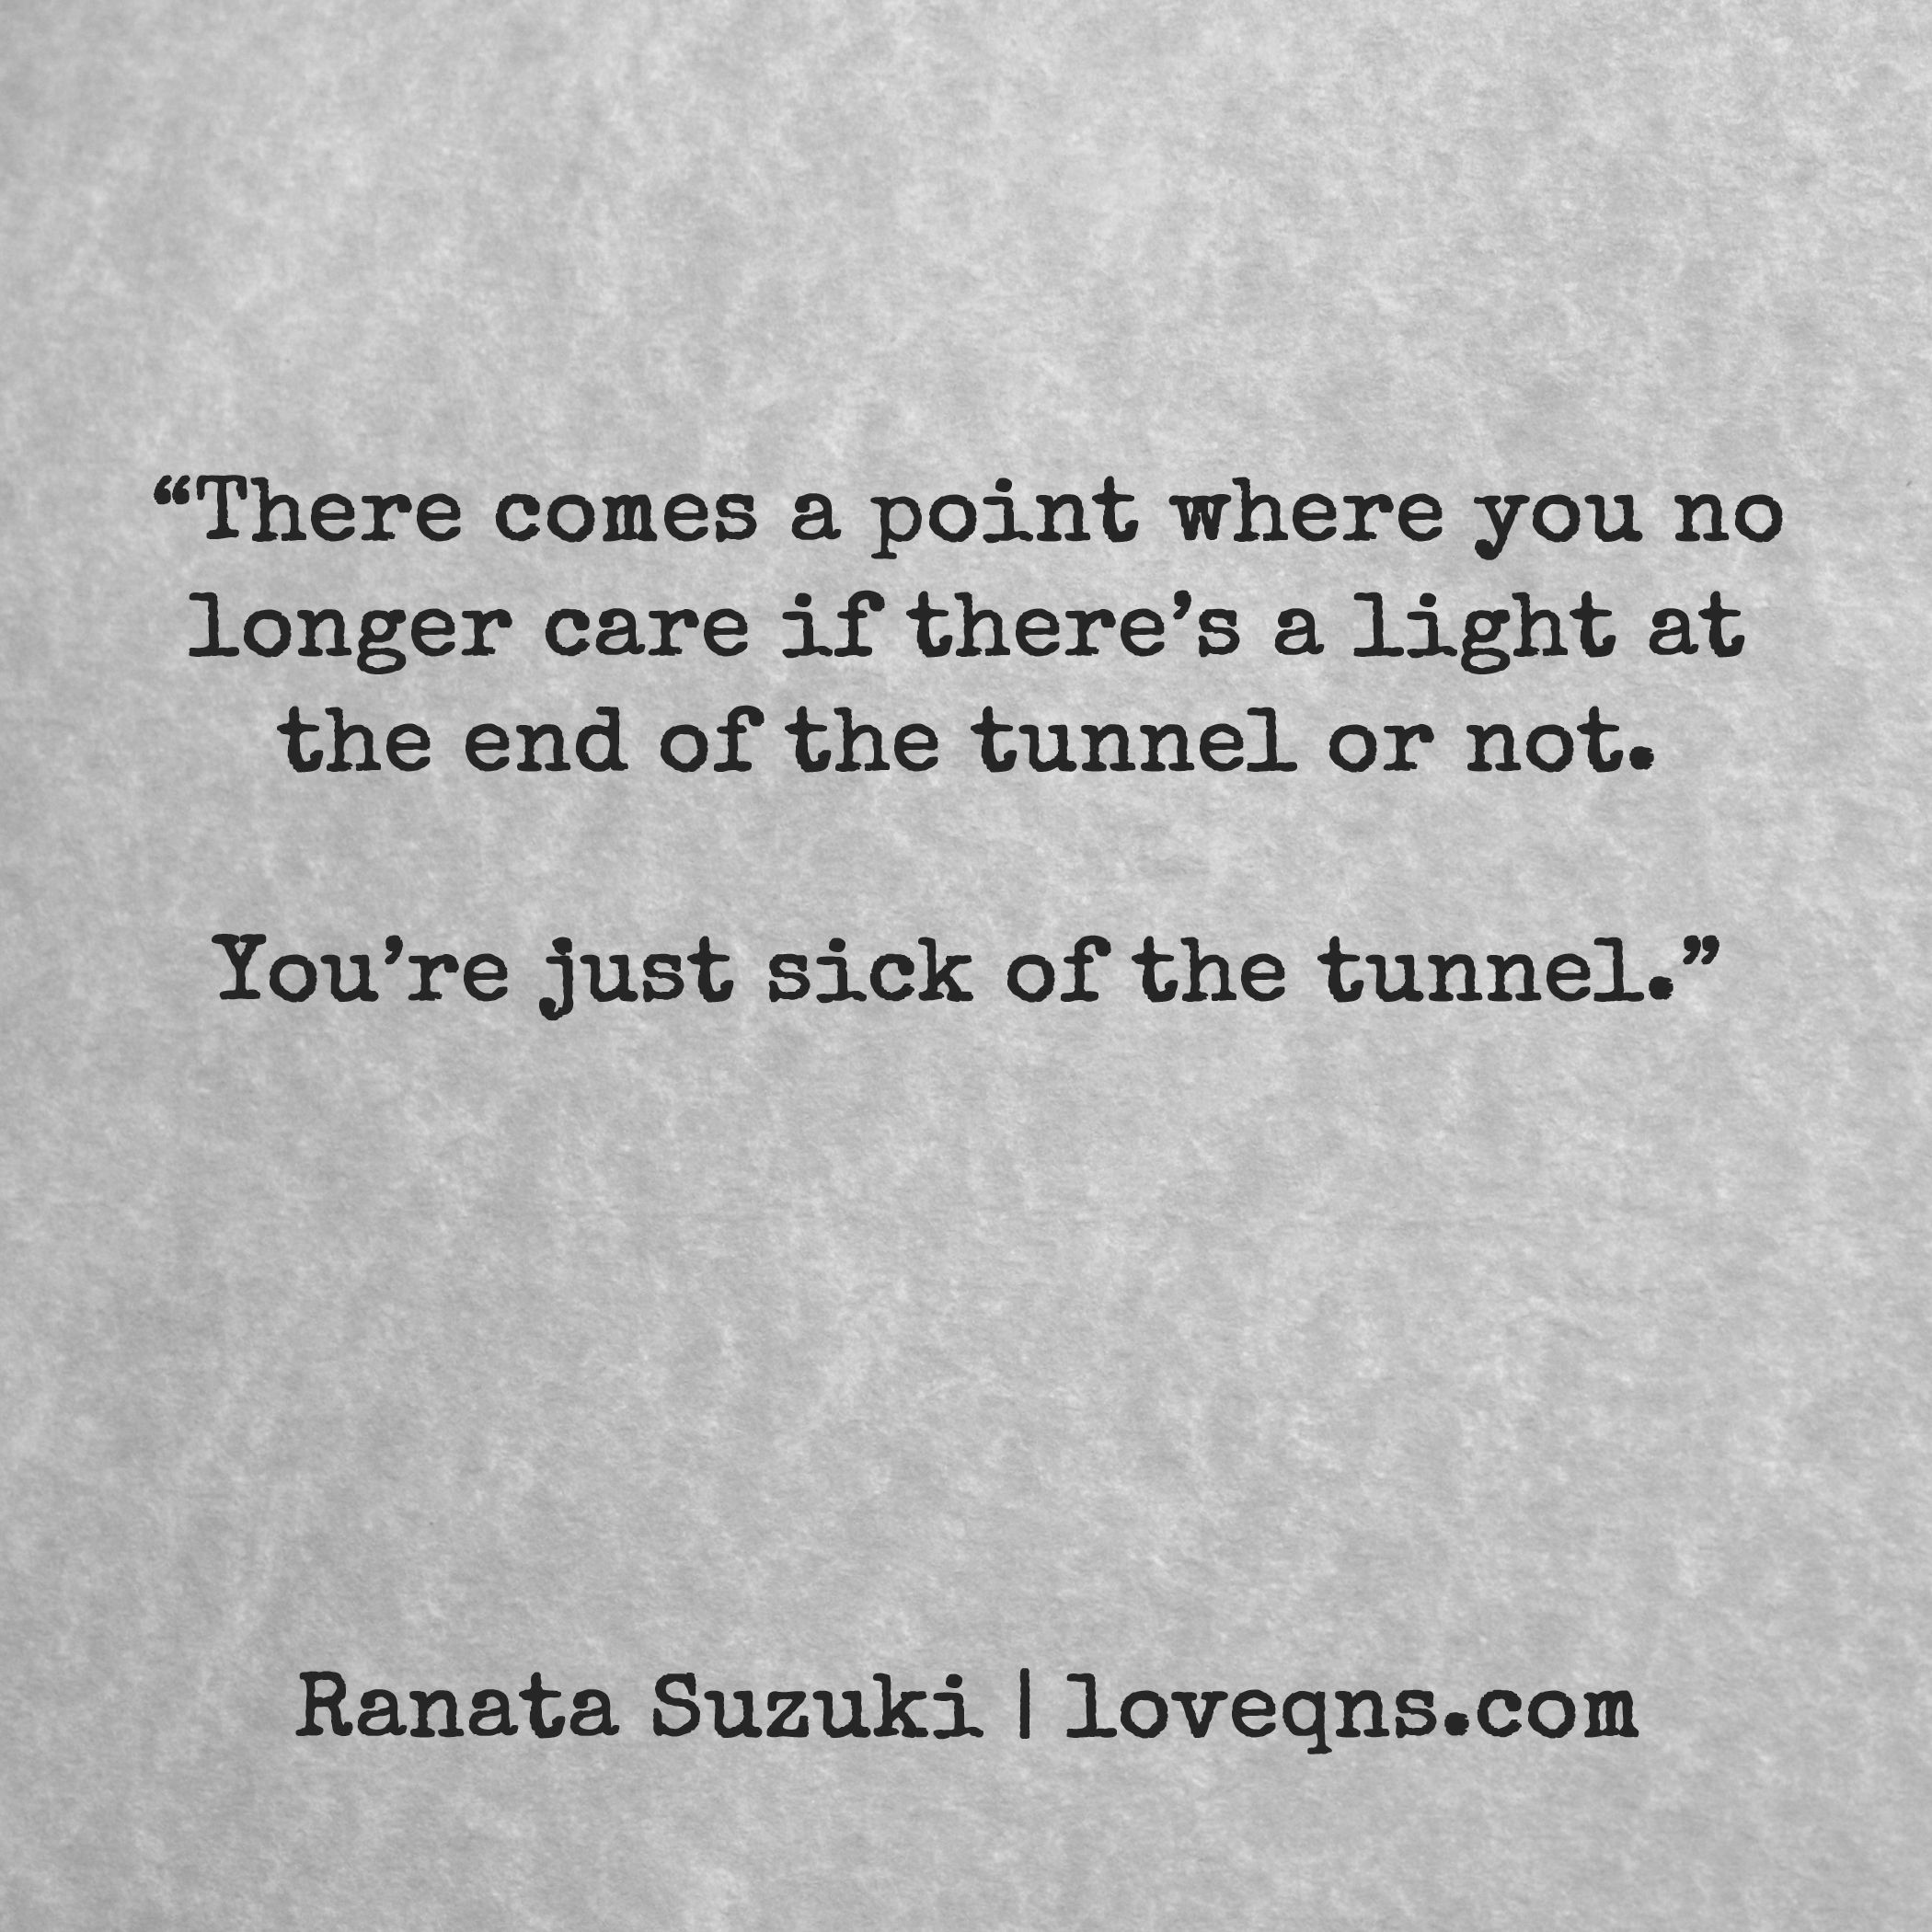 End Quotes There Comes A Point Where You No Longer Care If There's A Light At